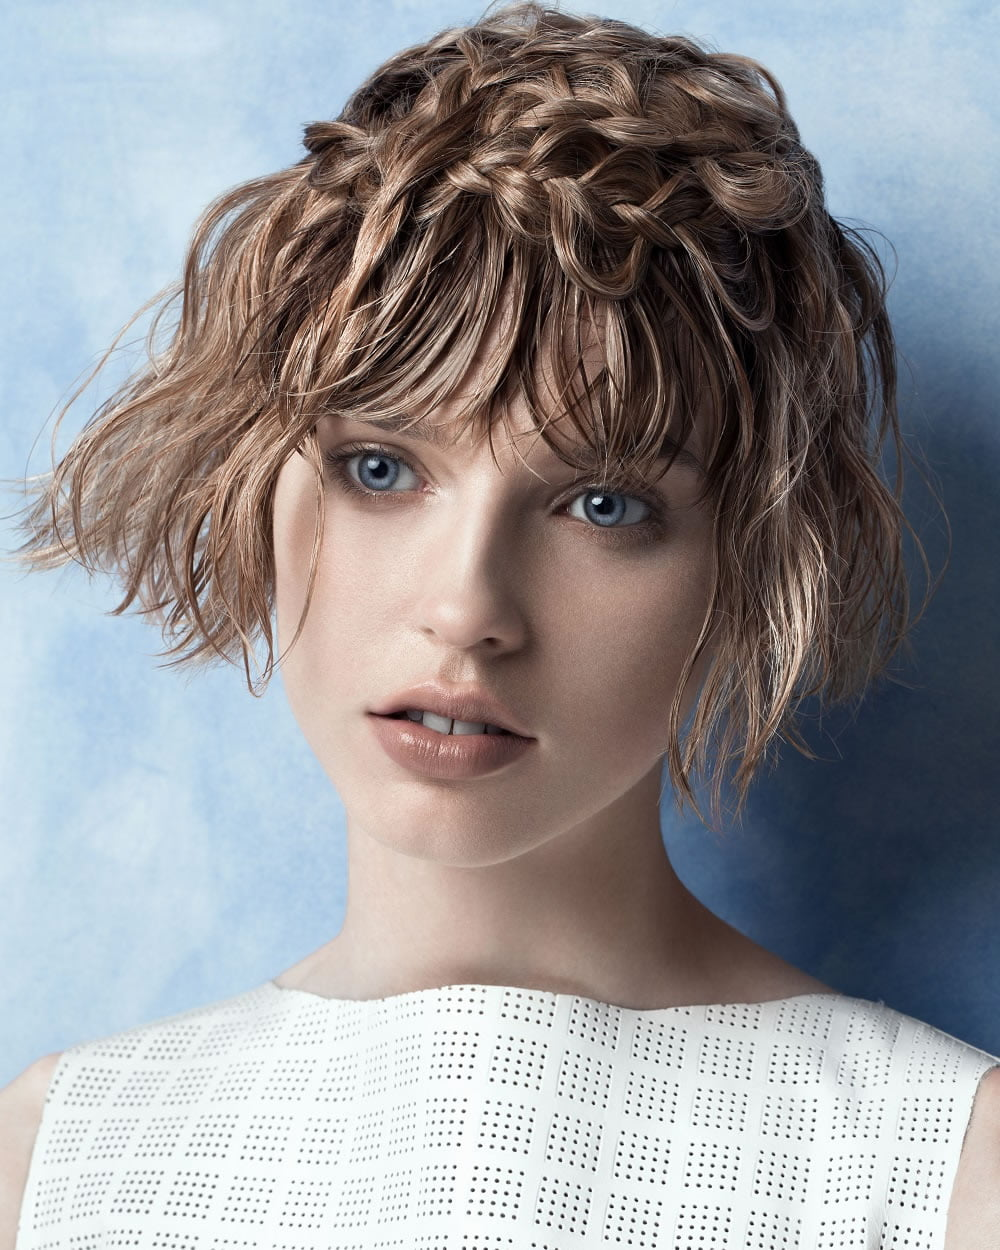 Spring 2018 Short Haircut Summer 2019 Pixie hairstyle for Girls (1) - HAIRSTYLES